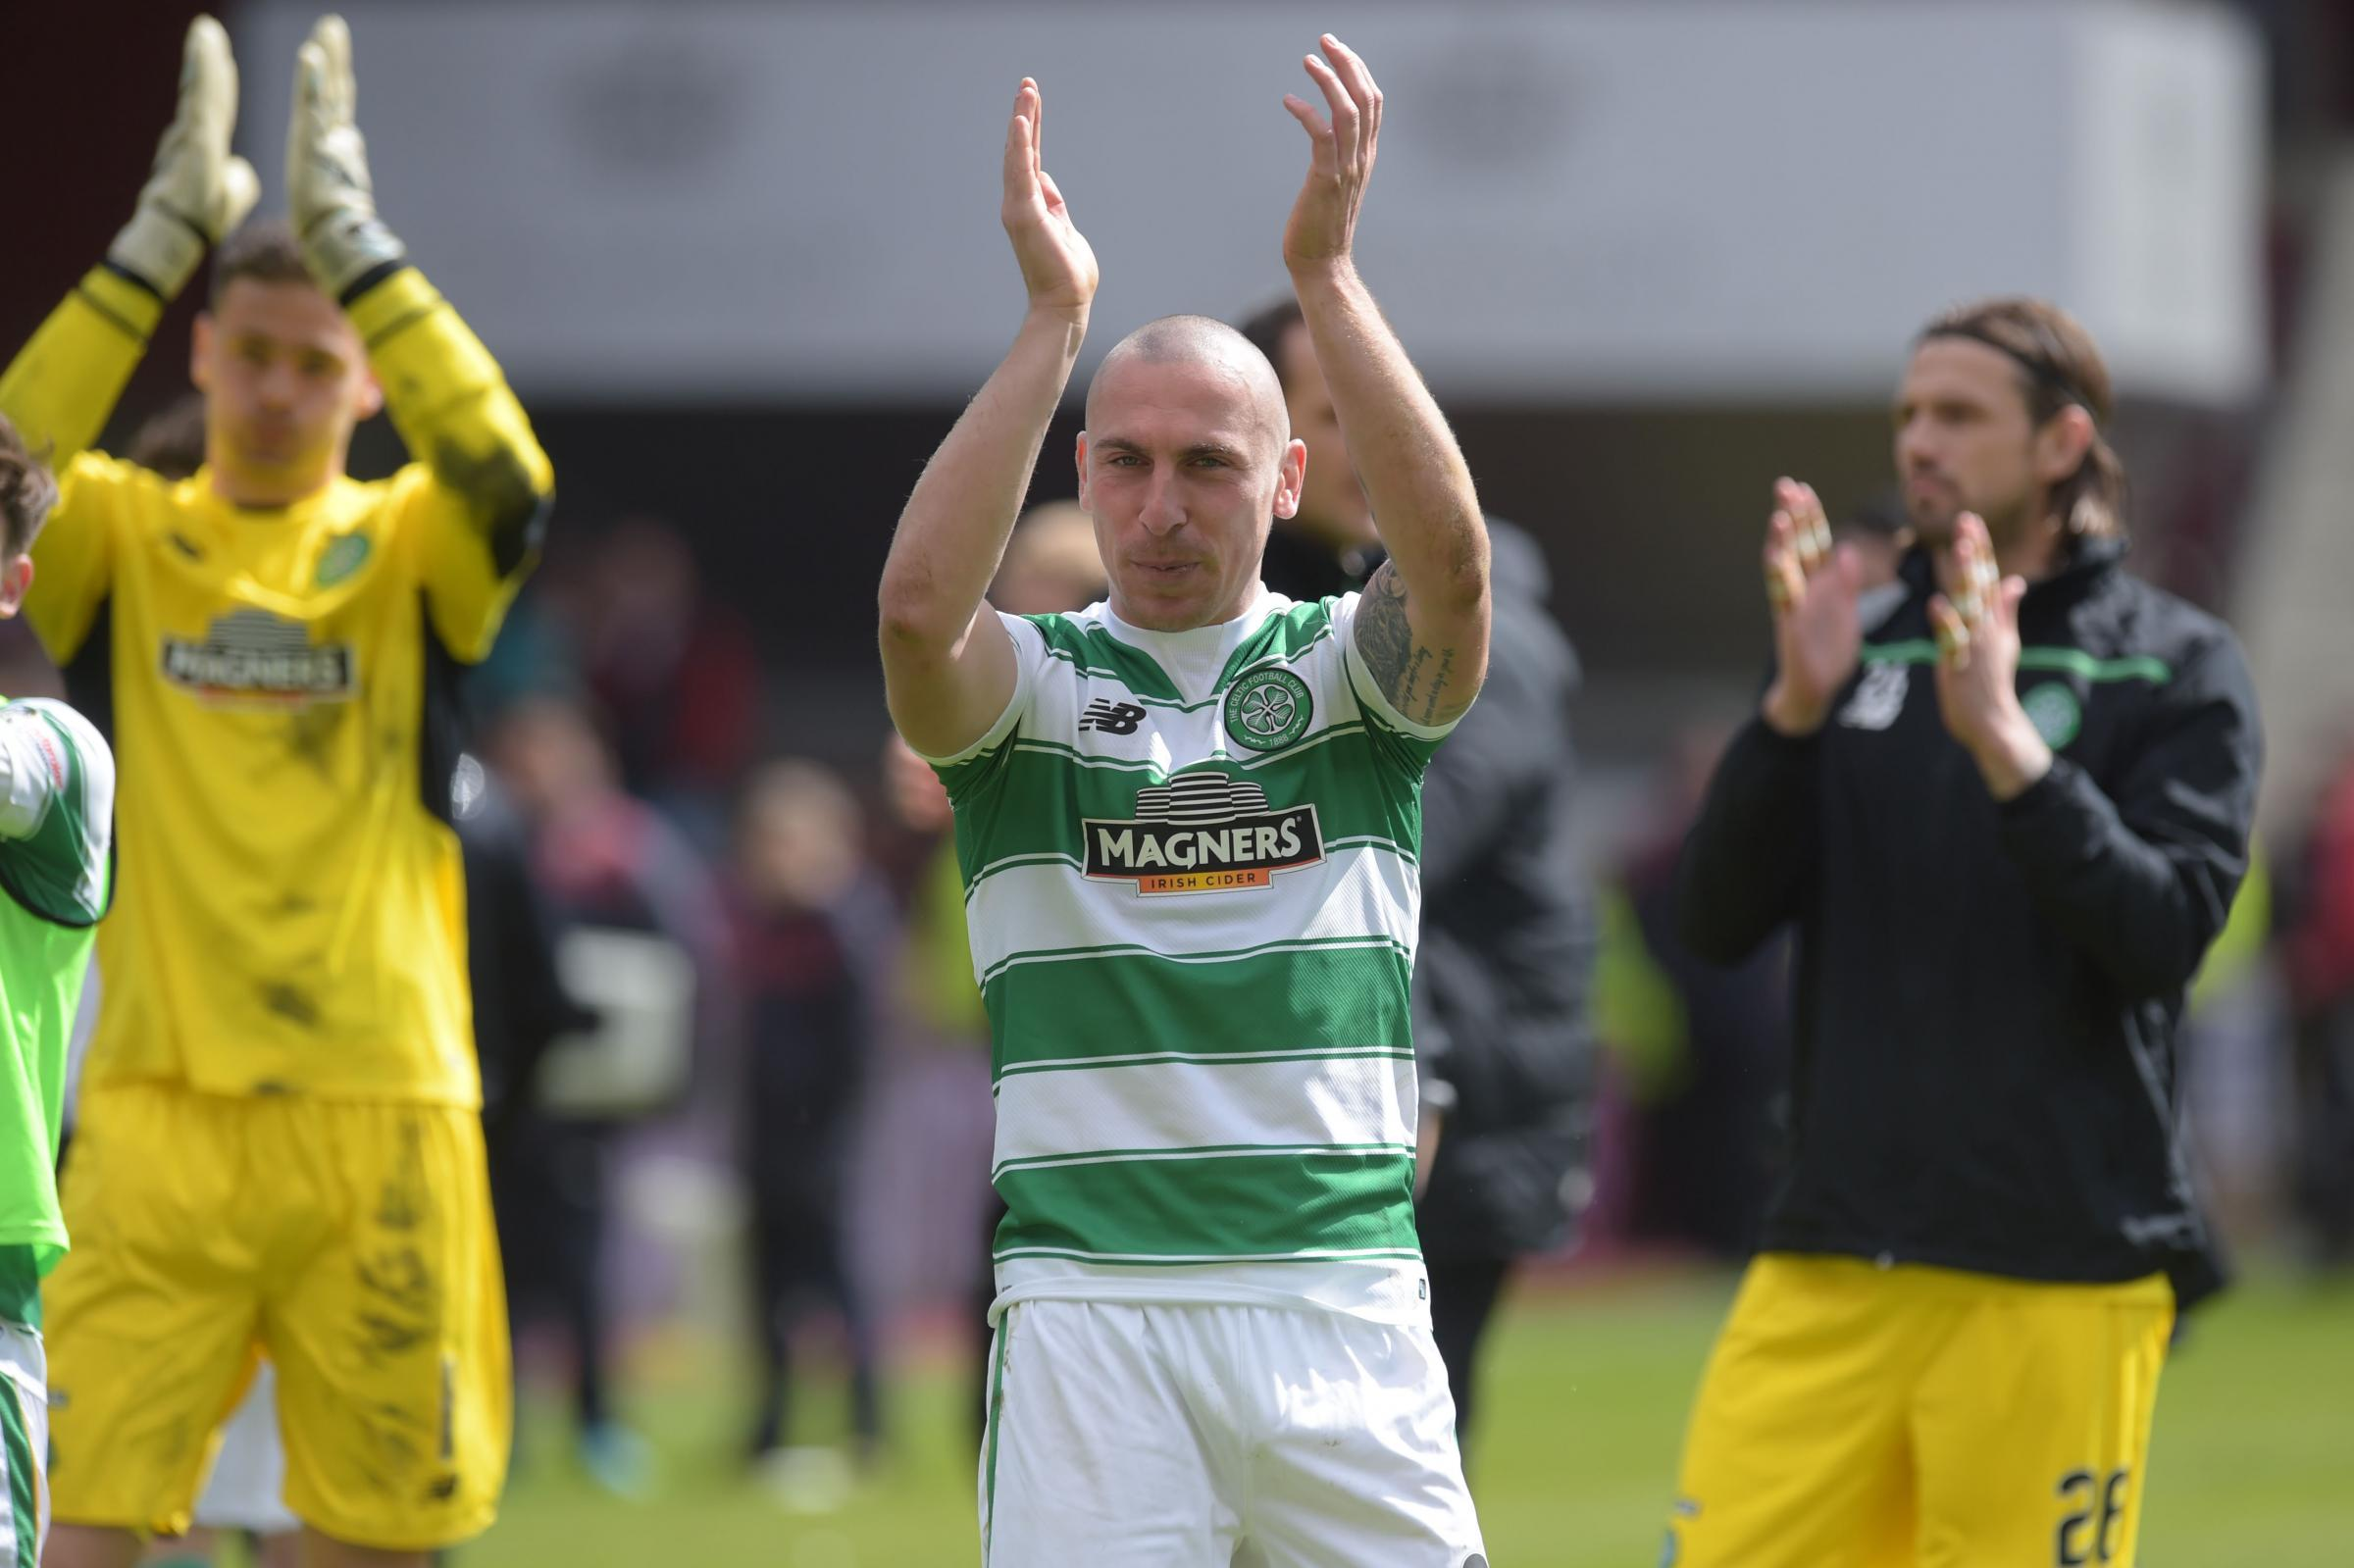 Celtic's Scott Brown celebrates after clinching the title on Saturday